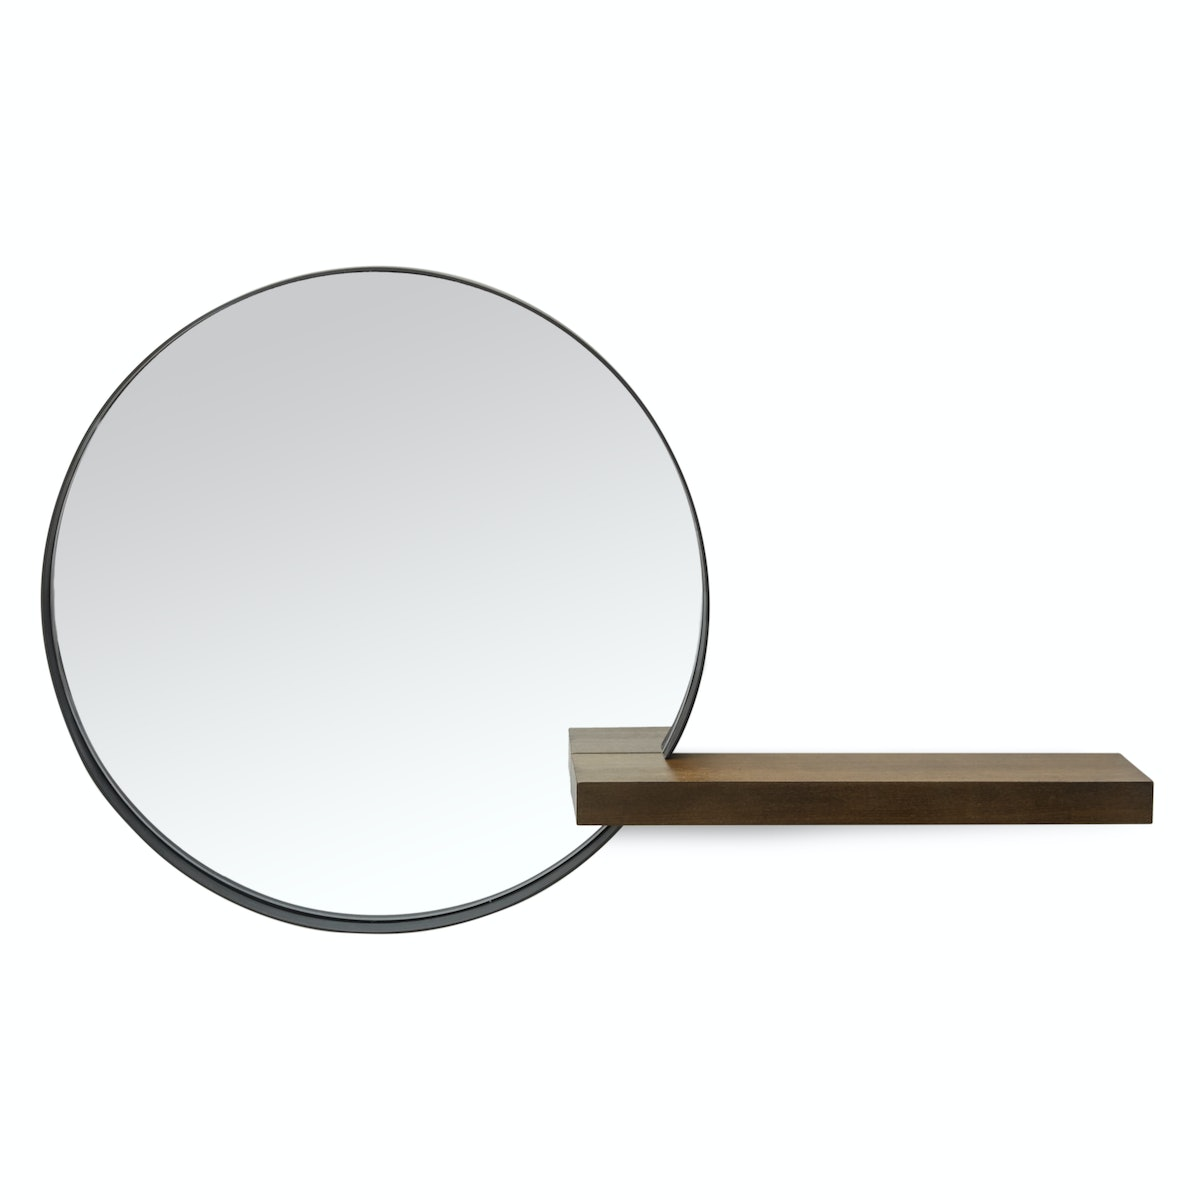 MoDRN Naturals Metal Framed Round Decorative Wall Mirror With Wood Shelf